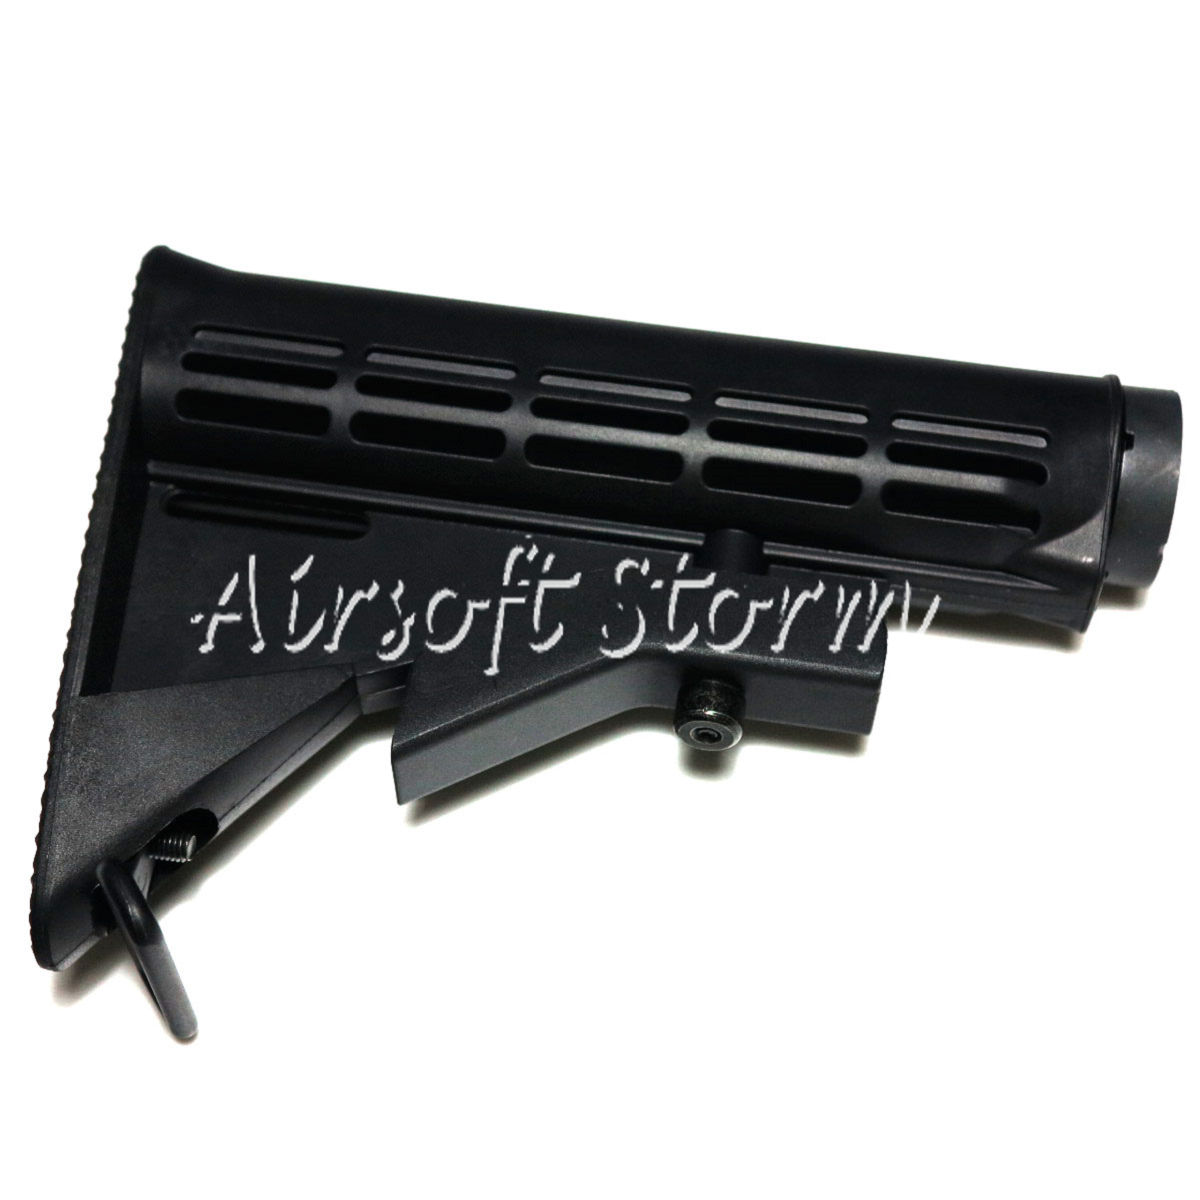 Airsoft Tactical Gear E&C 6 Position Sliding Stock with Pipe for HK416/M4/M16 AEG